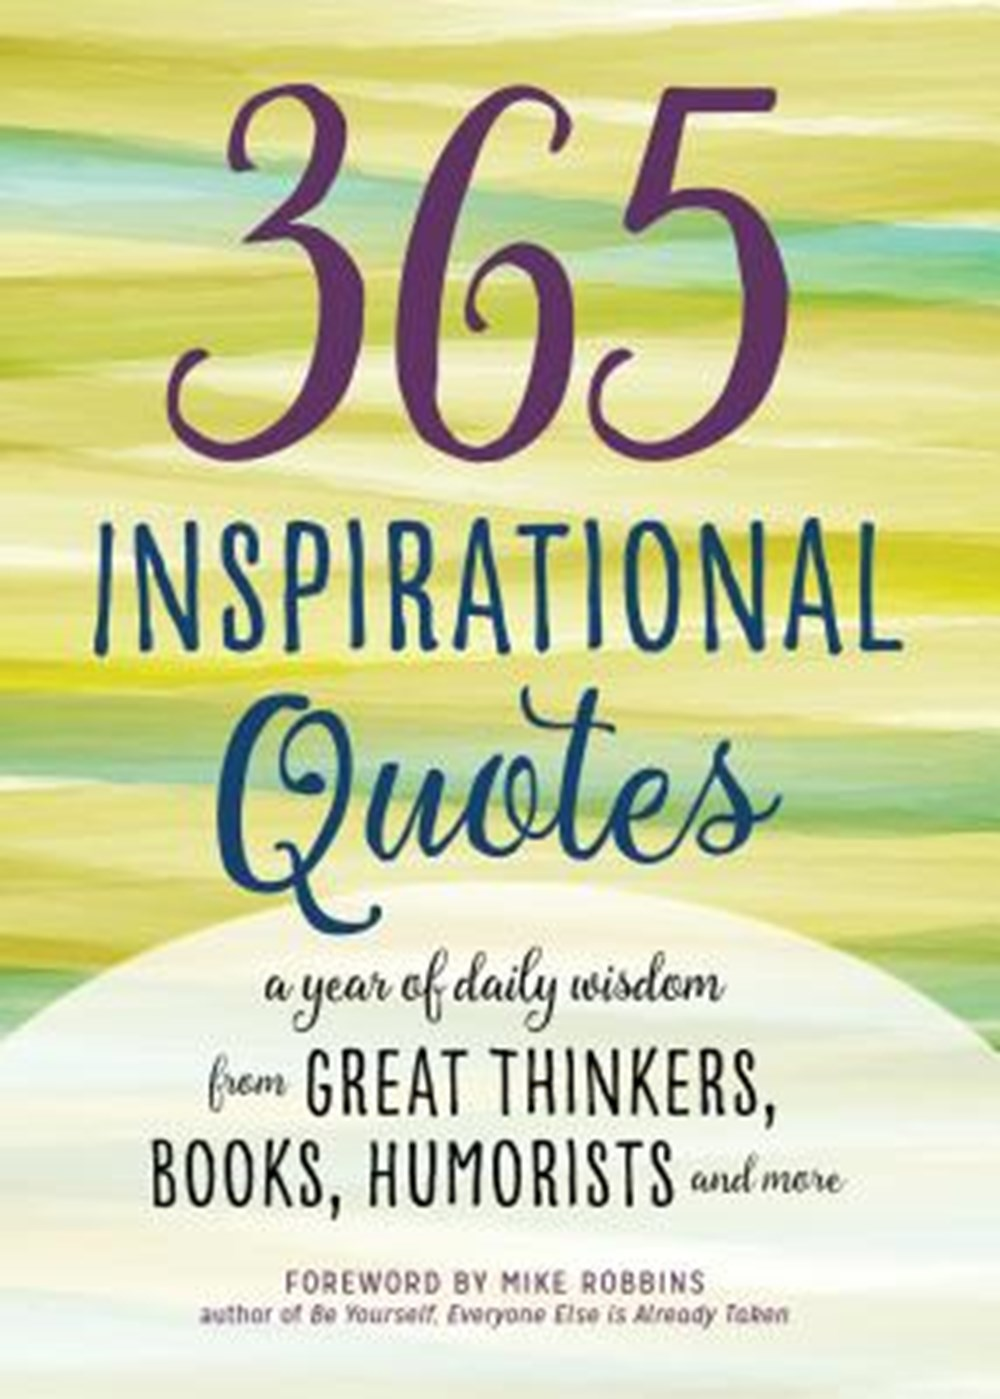 365 Inspirational Quotes A Year of Daily Wisdom from Great Thinkers, Books, Humorists, and More